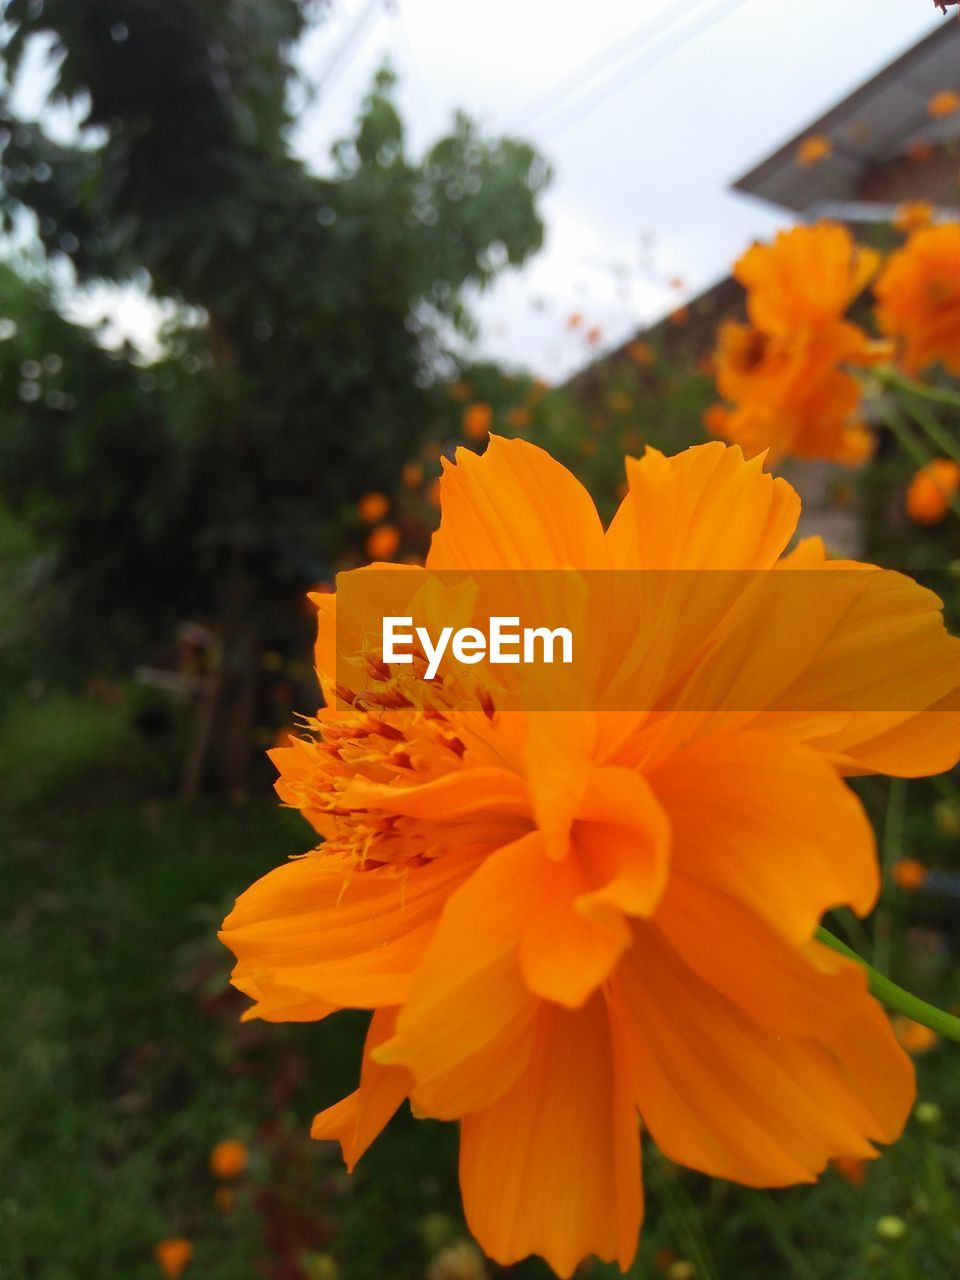 flower, petal, beauty in nature, nature, orange color, fragility, flower head, growth, plant, blooming, freshness, focus on foreground, outdoors, close-up, no people, yellow, marigold, day